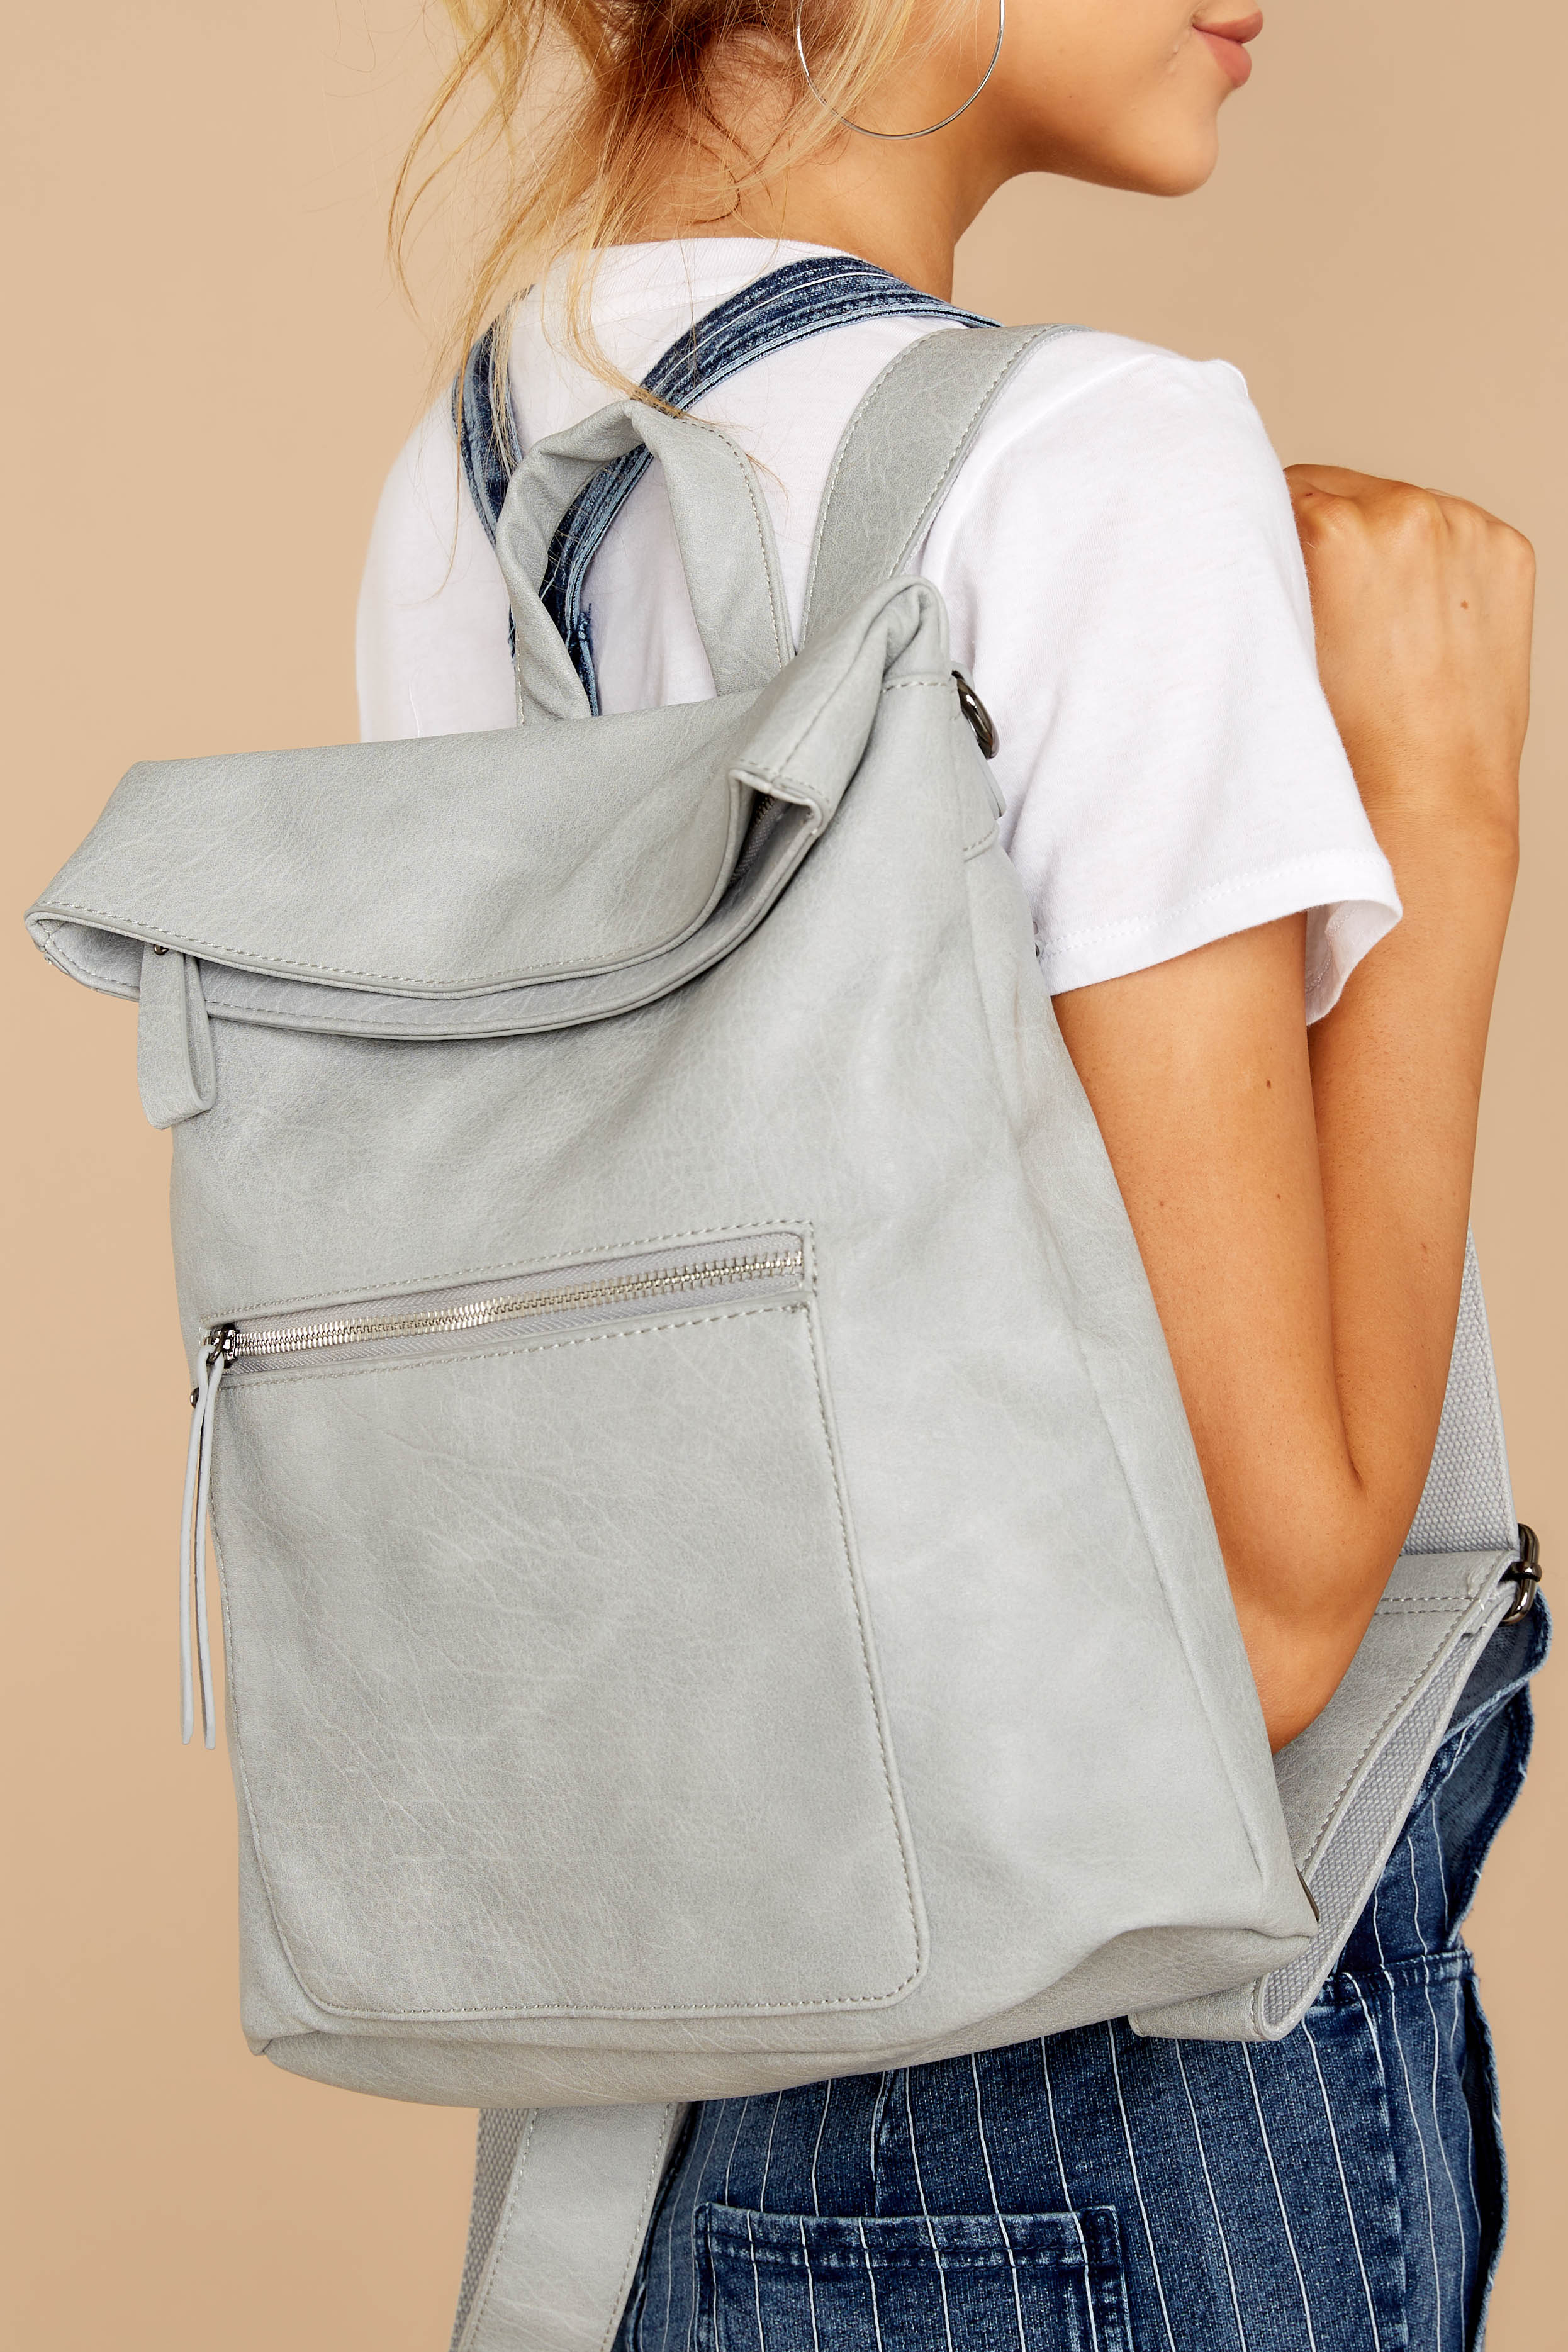 Do What You Please Light Grey Vegan Leather Backpack